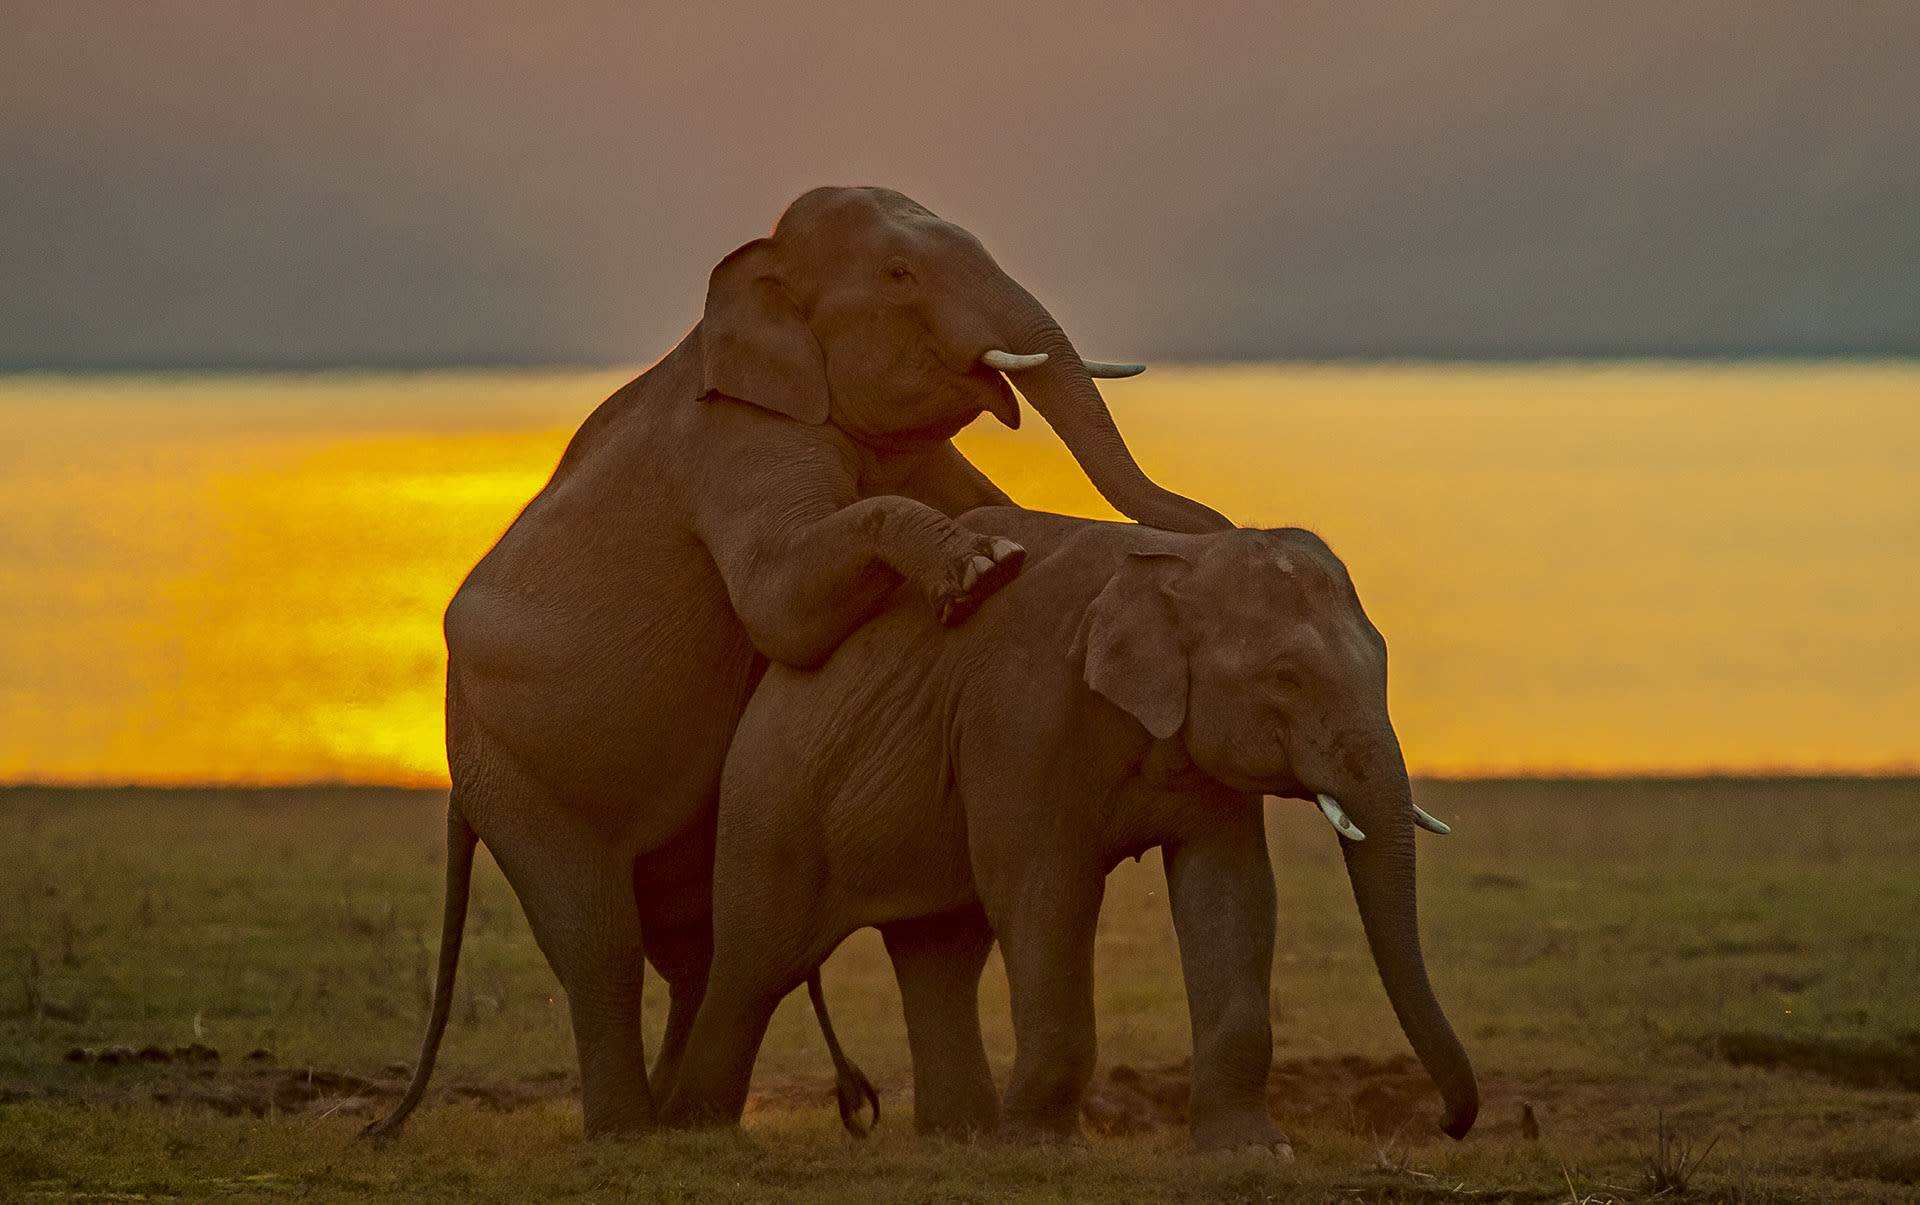 """Chemical signals are also integral to maintaining social cohesiveness within a group. The most significant of these chemical communications is musth, which is marked by secretions, hormonal spikes, and changes in the behaviour of adult males. """"One purpose of this is to let other males know to keep away, as musth is synonymous with increased vigour and high physical power,"""" explains Lakshminarayanan. """"The other is to let females know that one is ready for breeding.""""  Dominant males in musth have their choice of mate and will seek out herds with receptive females at this time. """"Even if there are 20 females, the bull will mate with all of them,"""" Lakshminarayanan says. """"but he might also mate with females from multiple herds if they are available."""""""